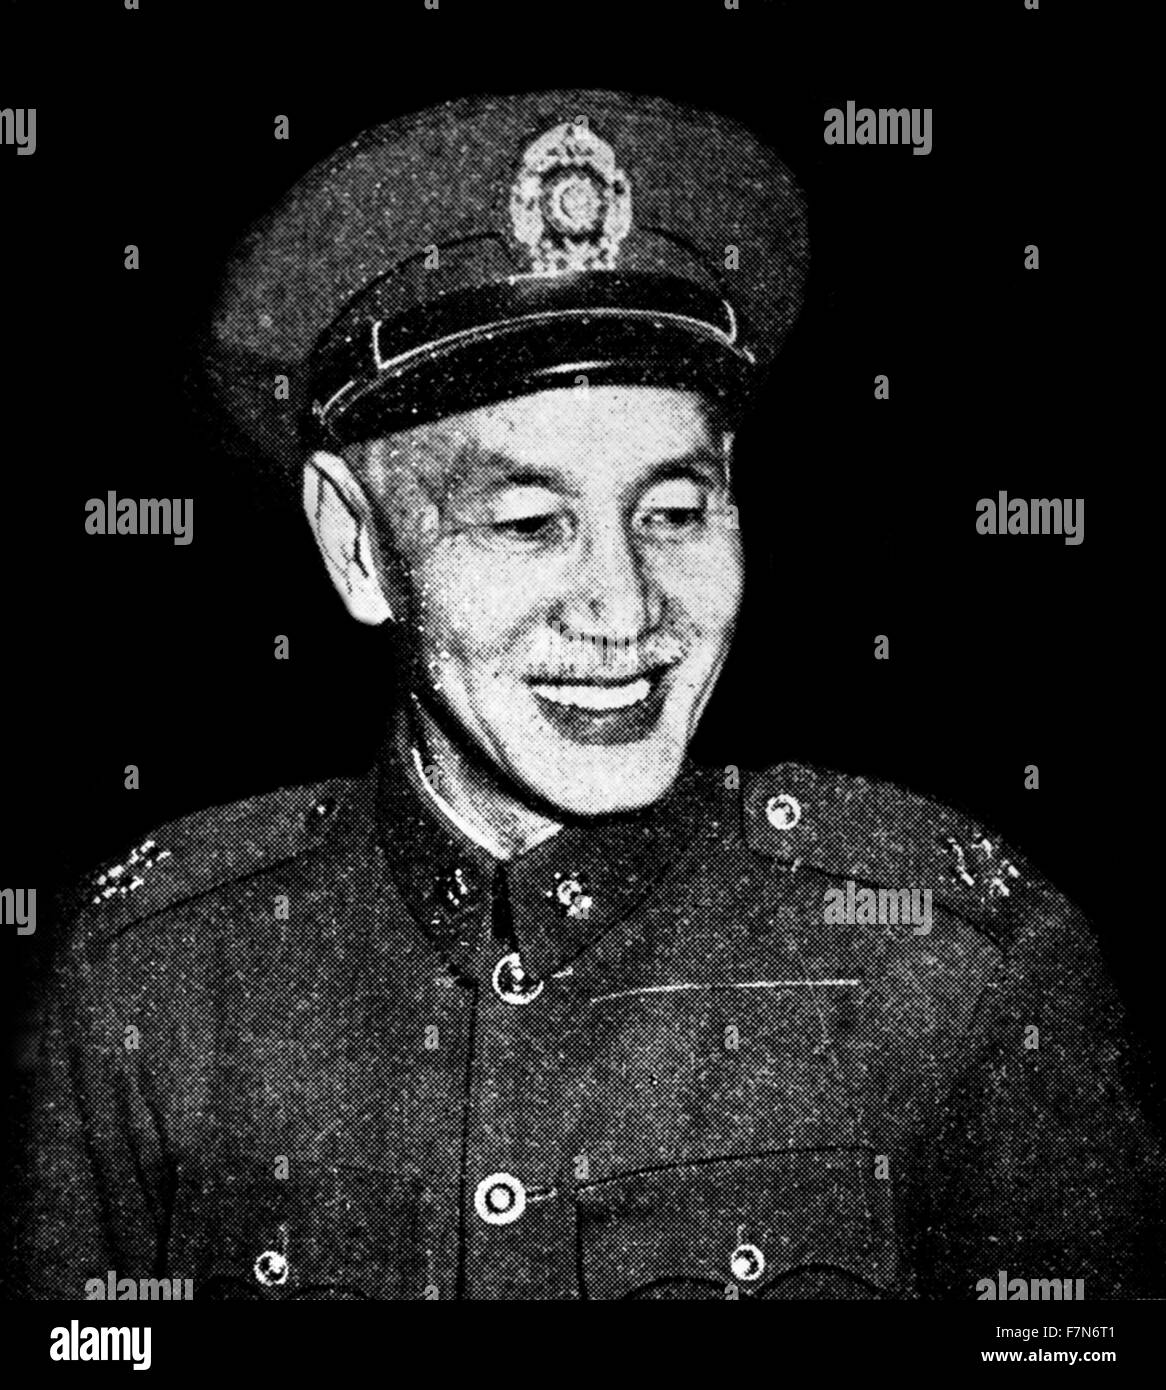 a biography of chiang kai shek a chinese soldier Chiang kai-shek was a soldier and he understood little about the economy his style of governance revolved around military power and neo-confucian ethics his chief aim was to fight against his many adversaries – rivalling guomindang factions and the communists – and to reform the spirit of his people.